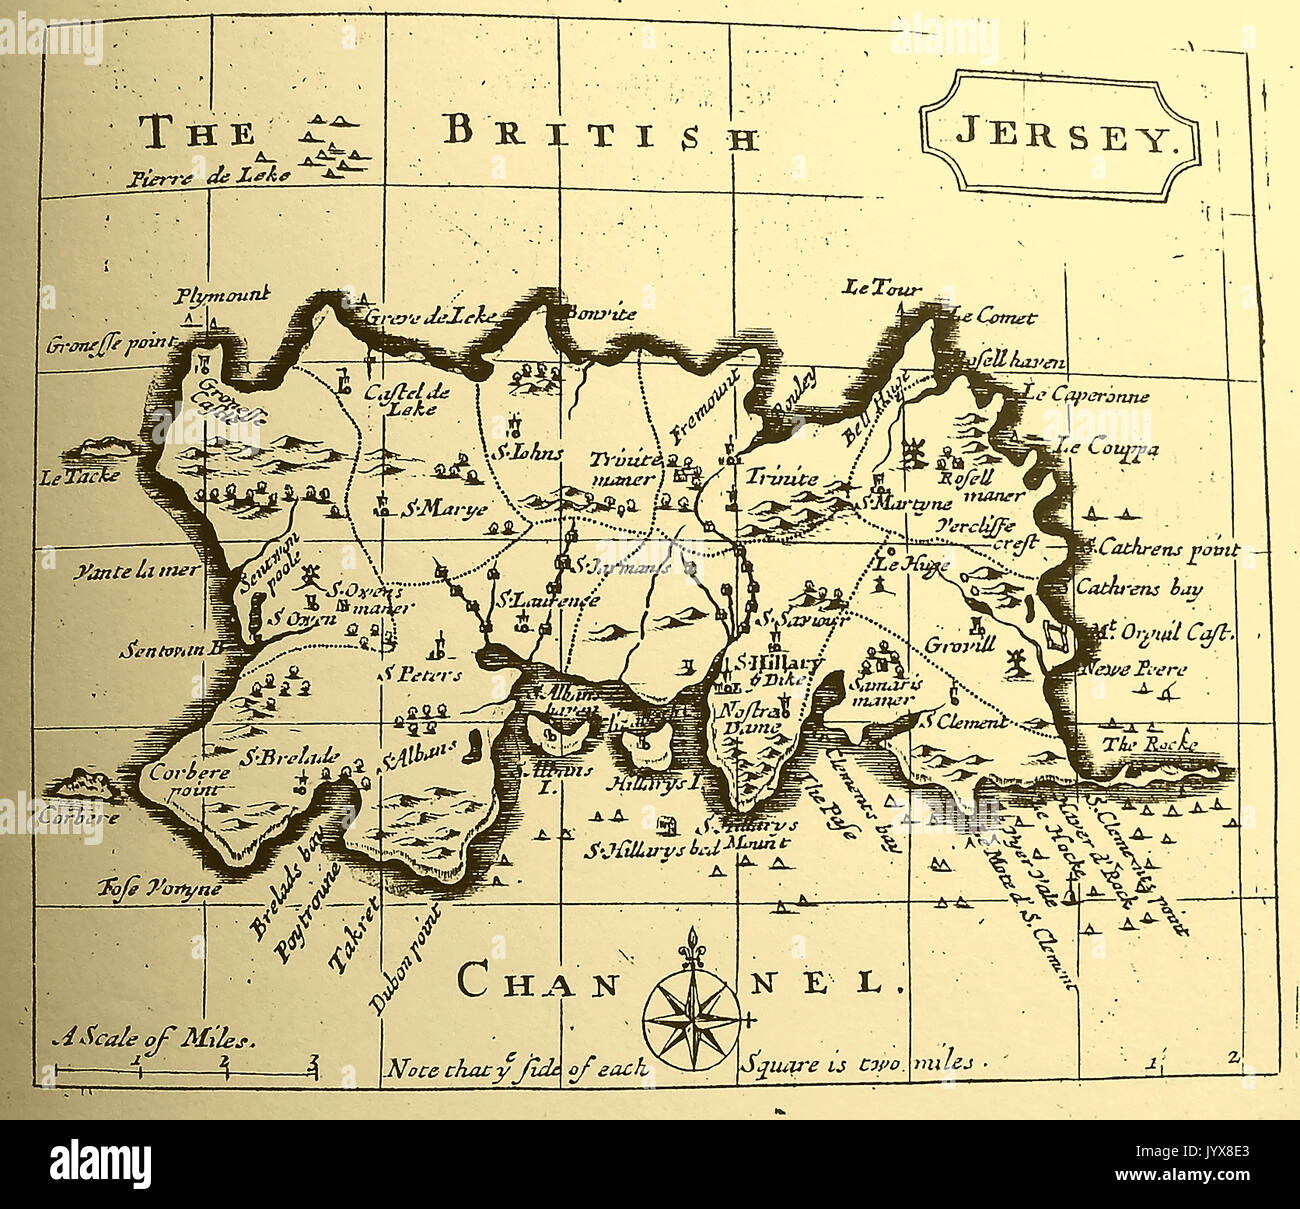 Map Of Uk Including Jersey.A 1778 Map Of Jersey Channel Islands Uk Stock Photo 154856075 Alamy